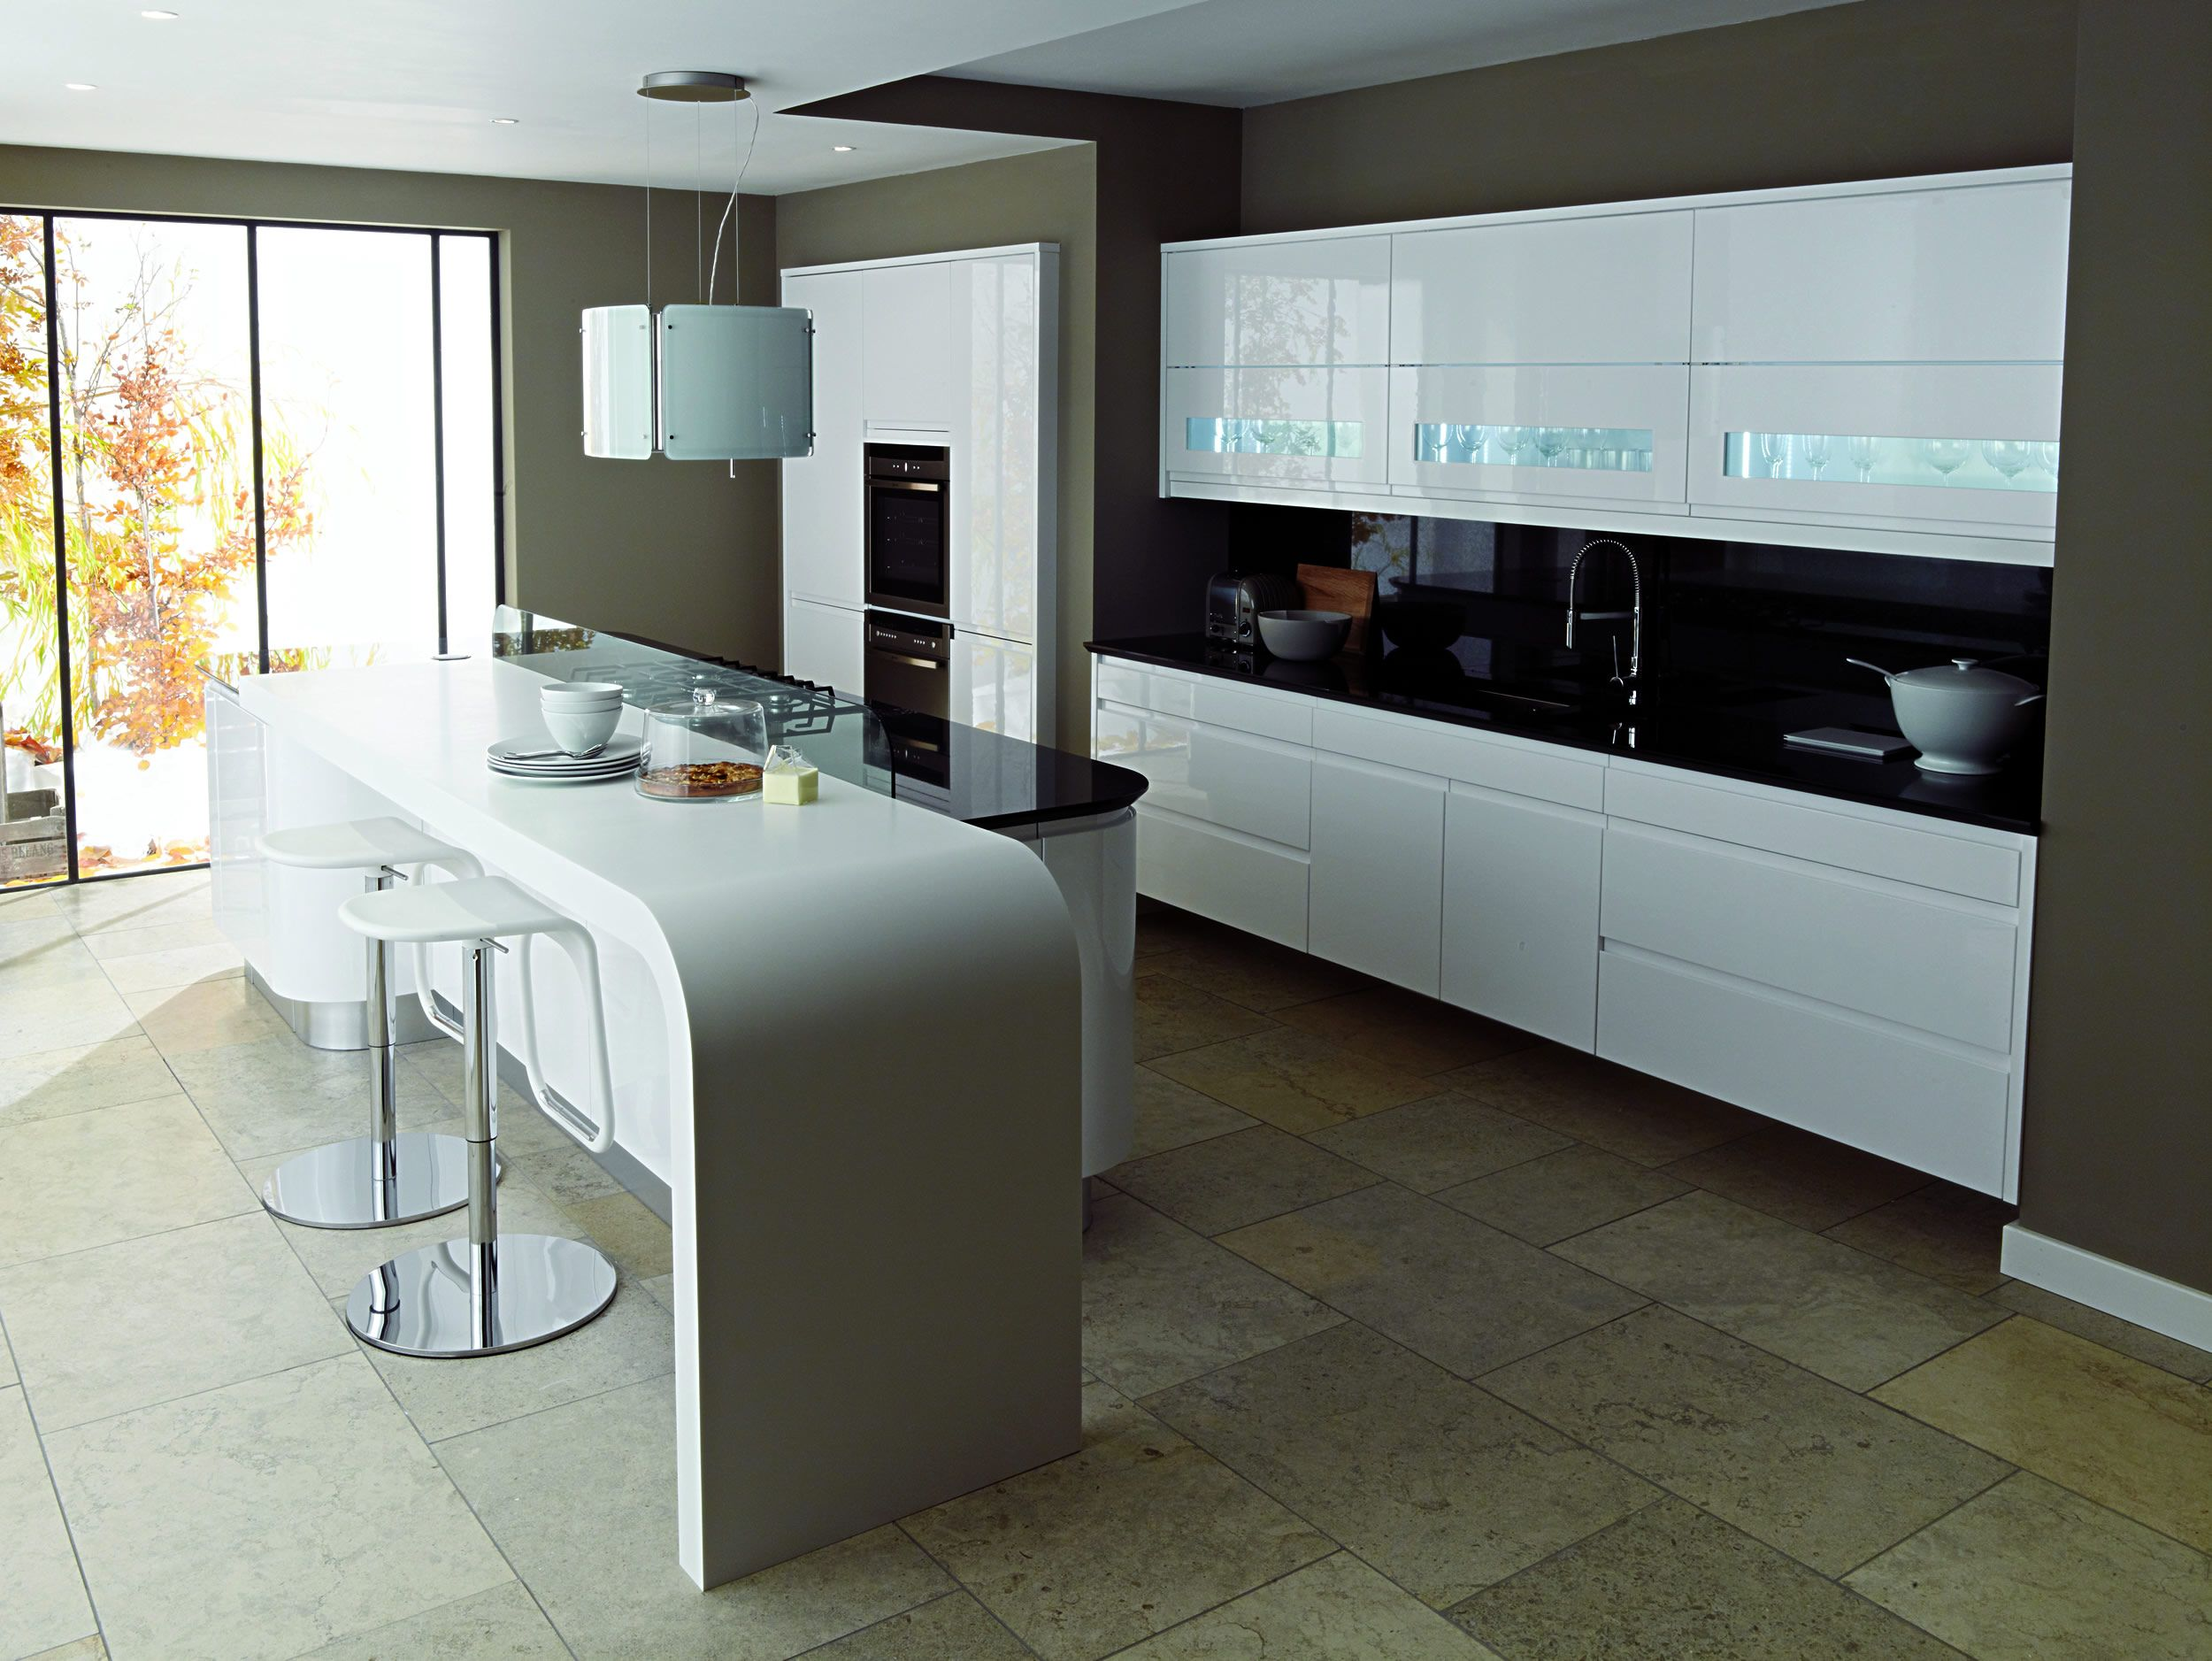 Modern design takes kitchen makeovers from basic to elegant ...